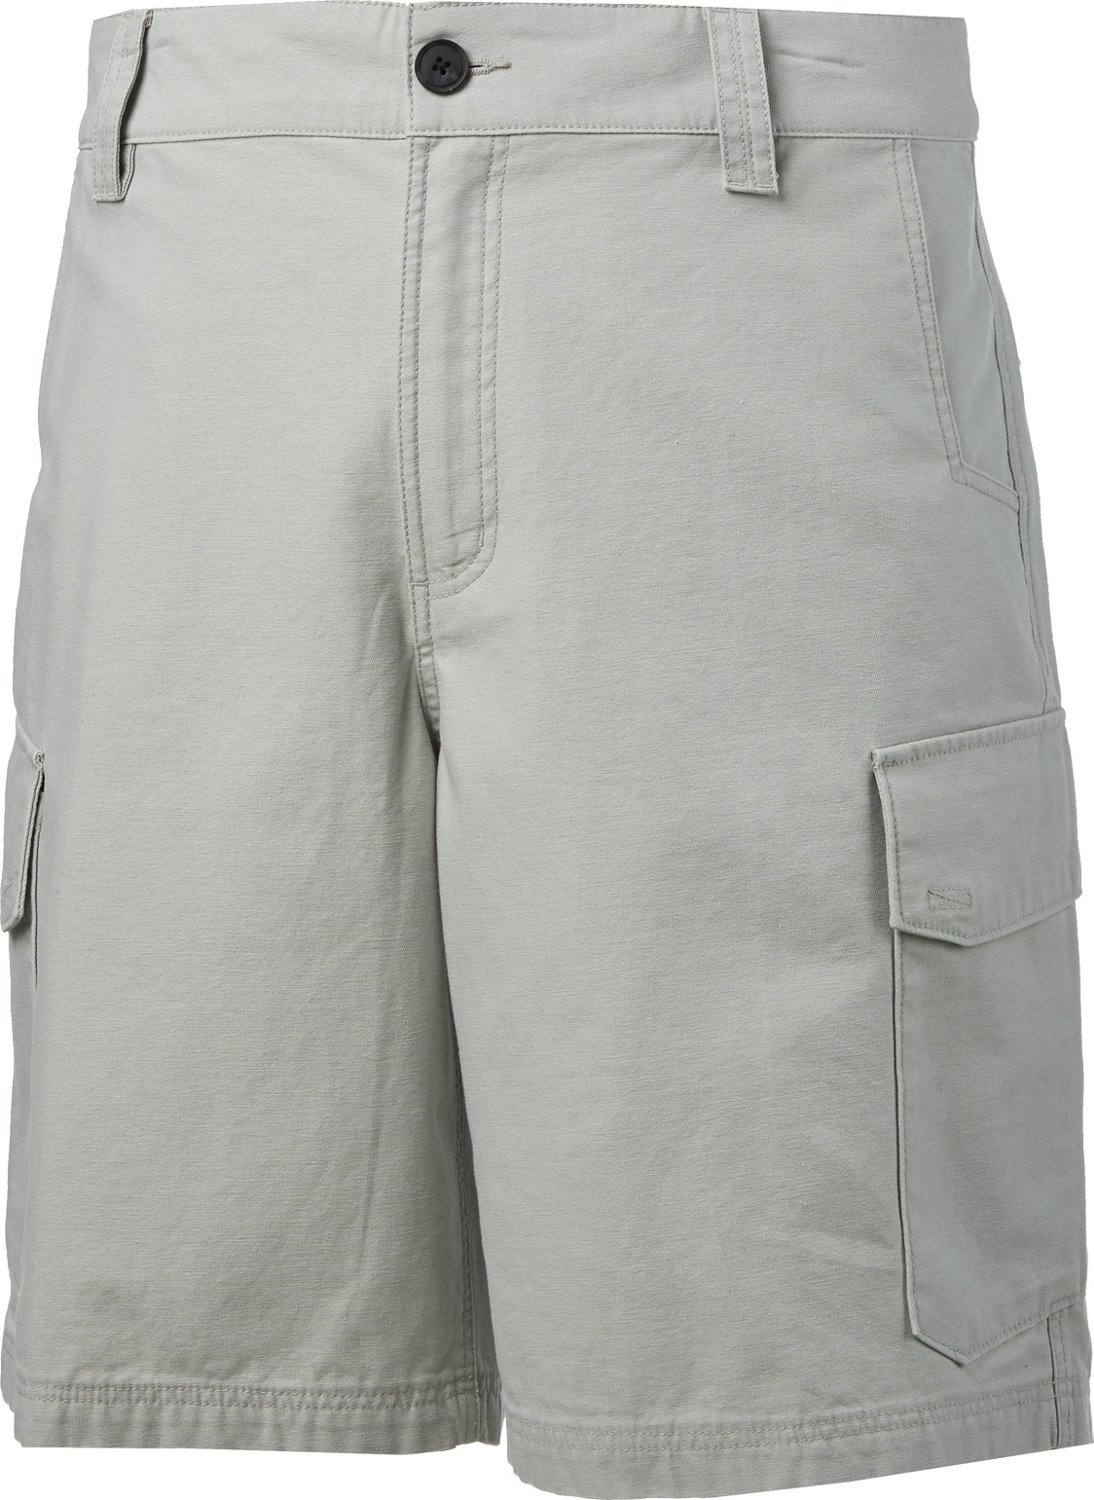 54b598a14 Display product reviews for Magellan Outdoors Men's Lost Pines Cargo Shorts